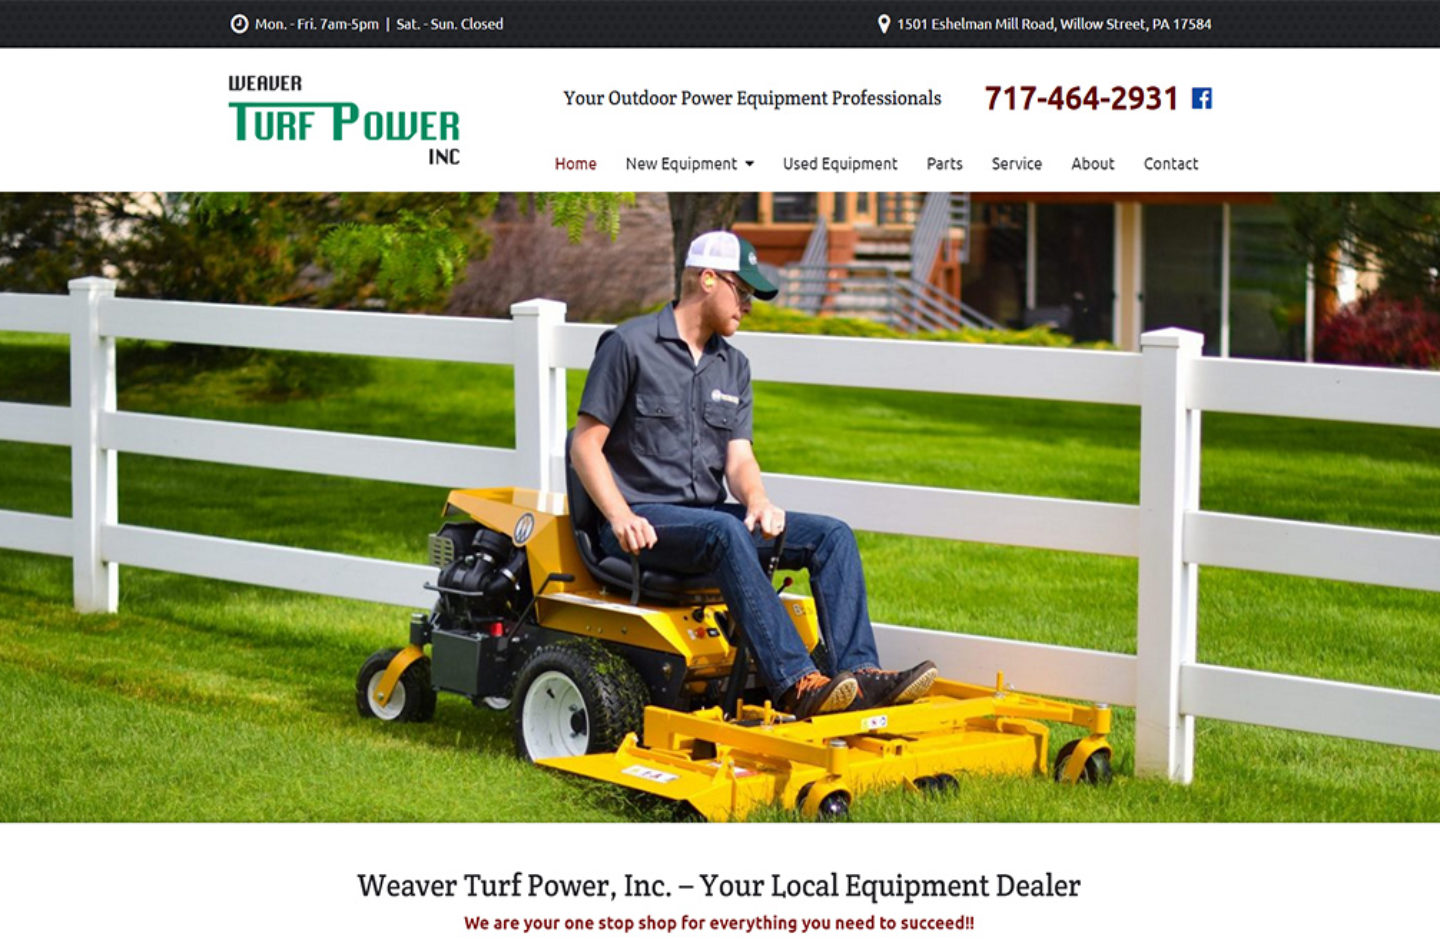 Weaver Turf Power